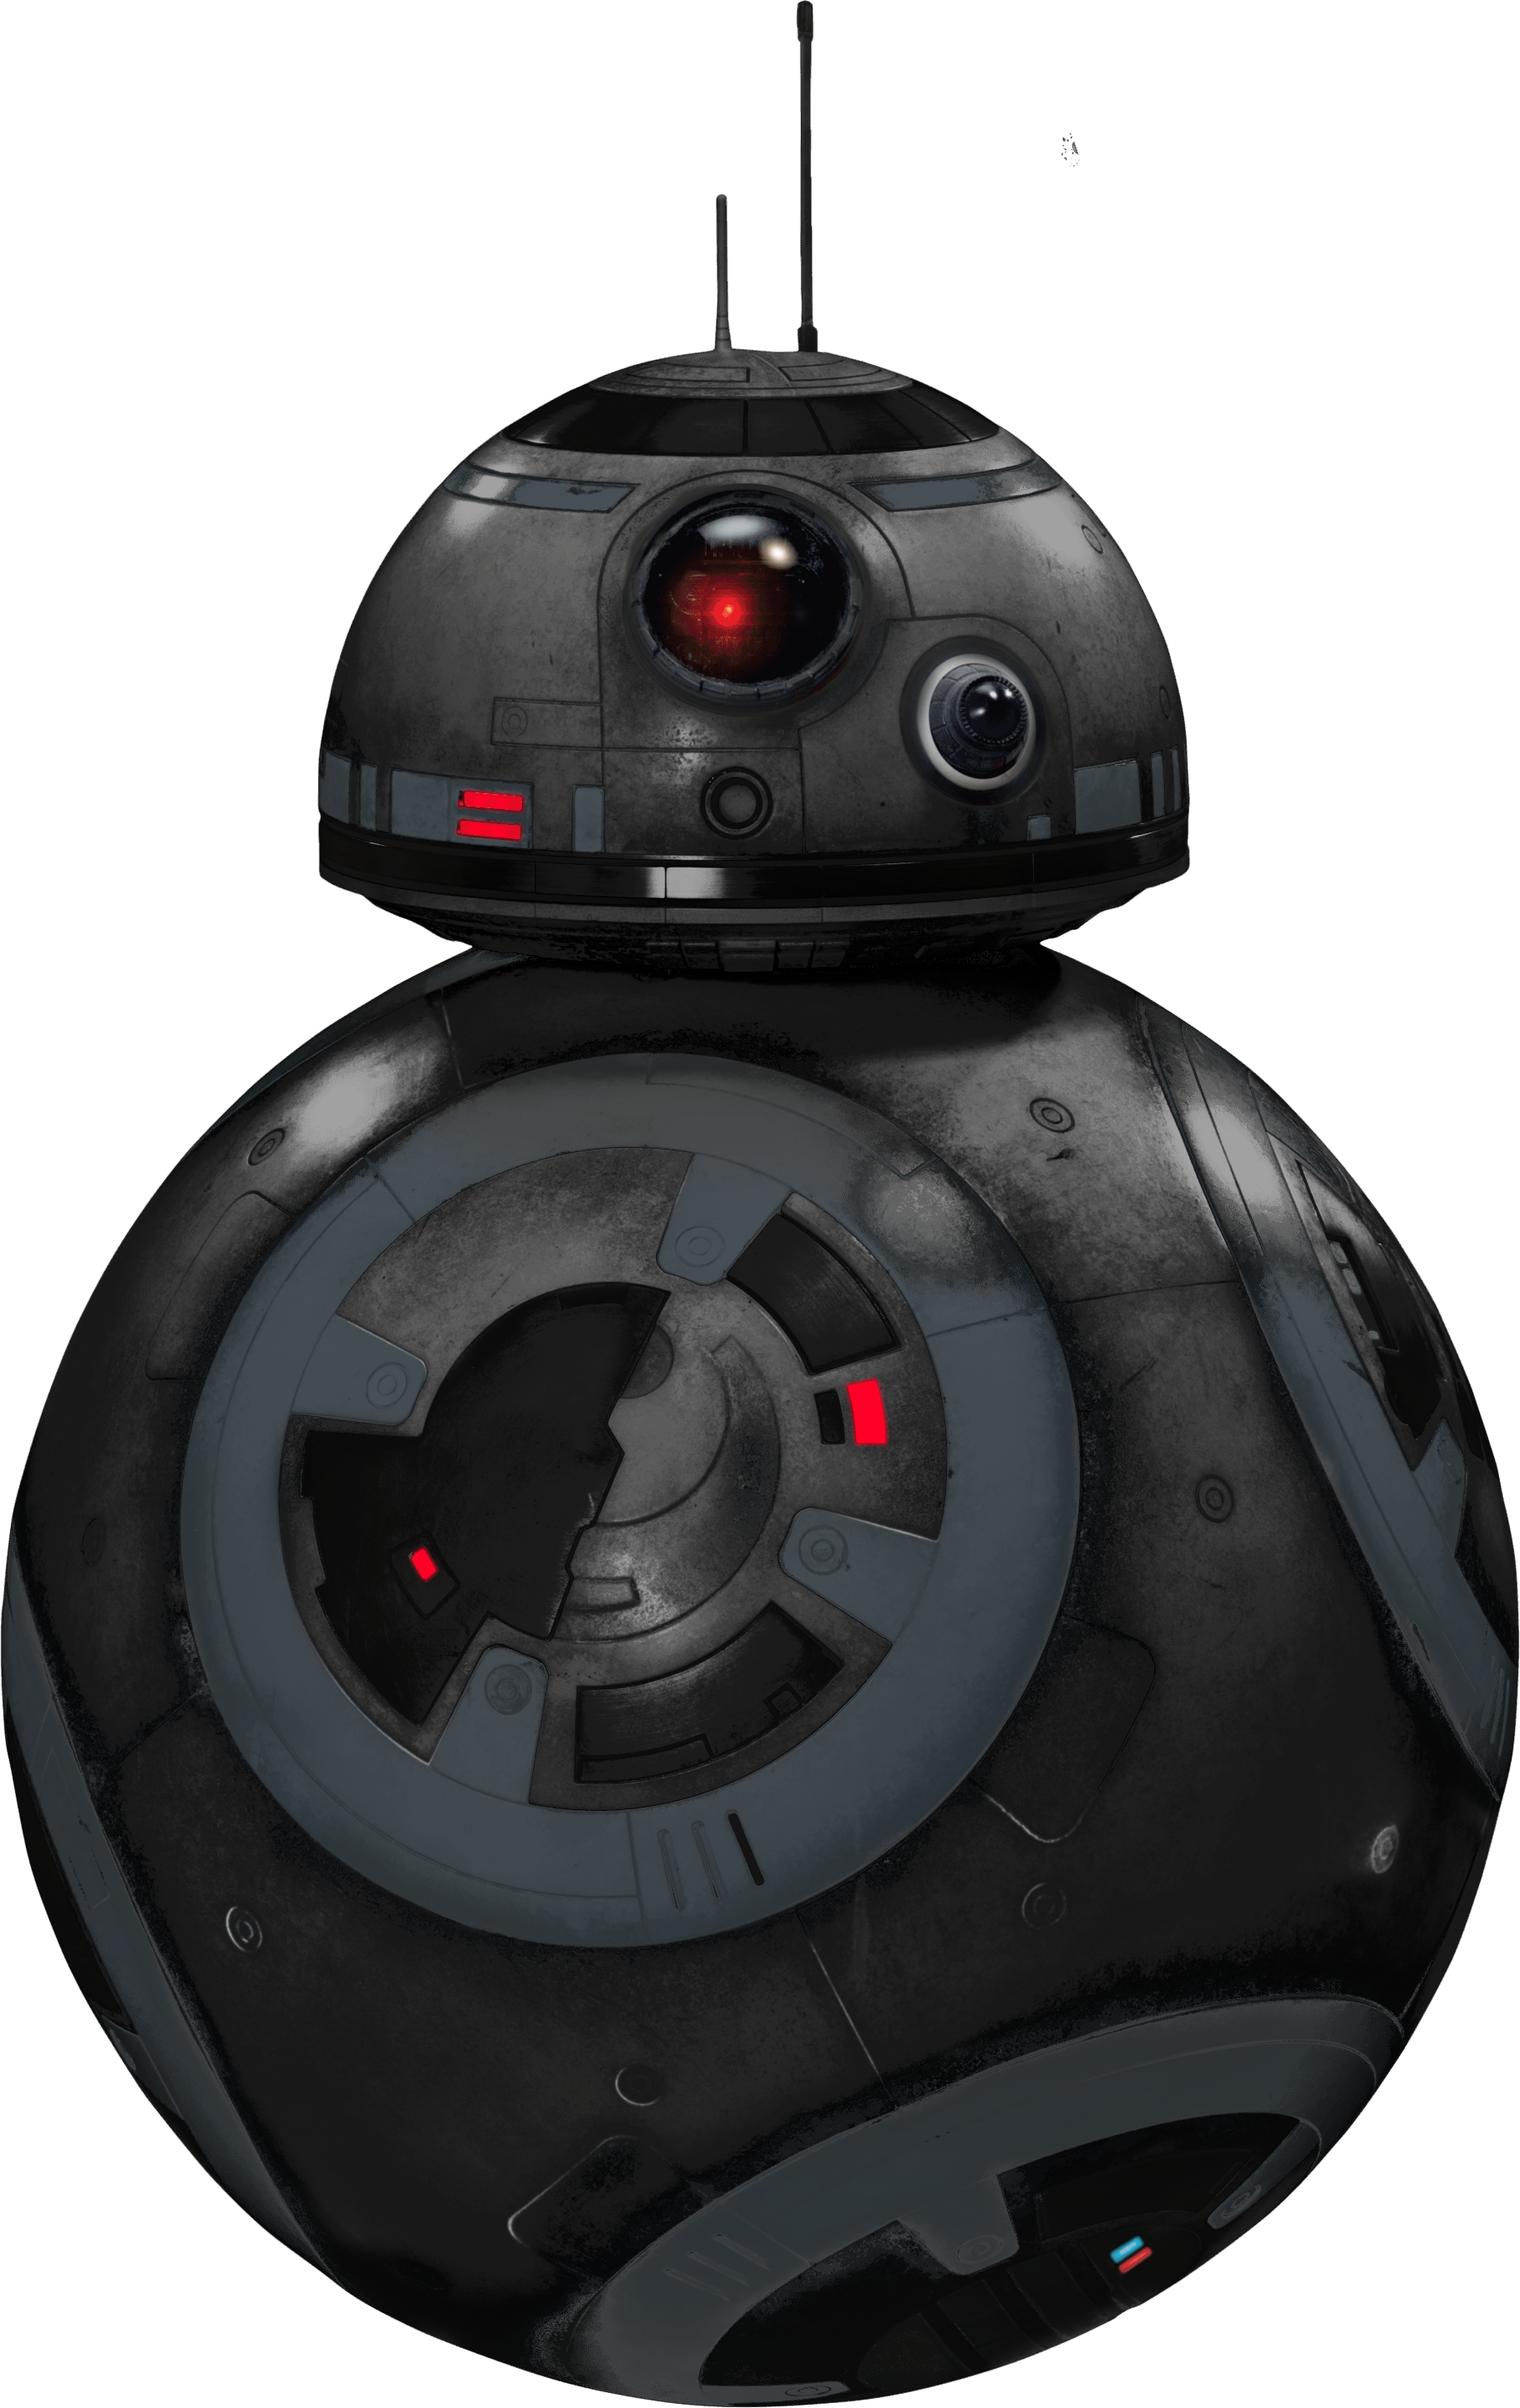 bb-9e-star-wars-ep8-the-last-jedi-characters-cut-out-with-transparent-background.png